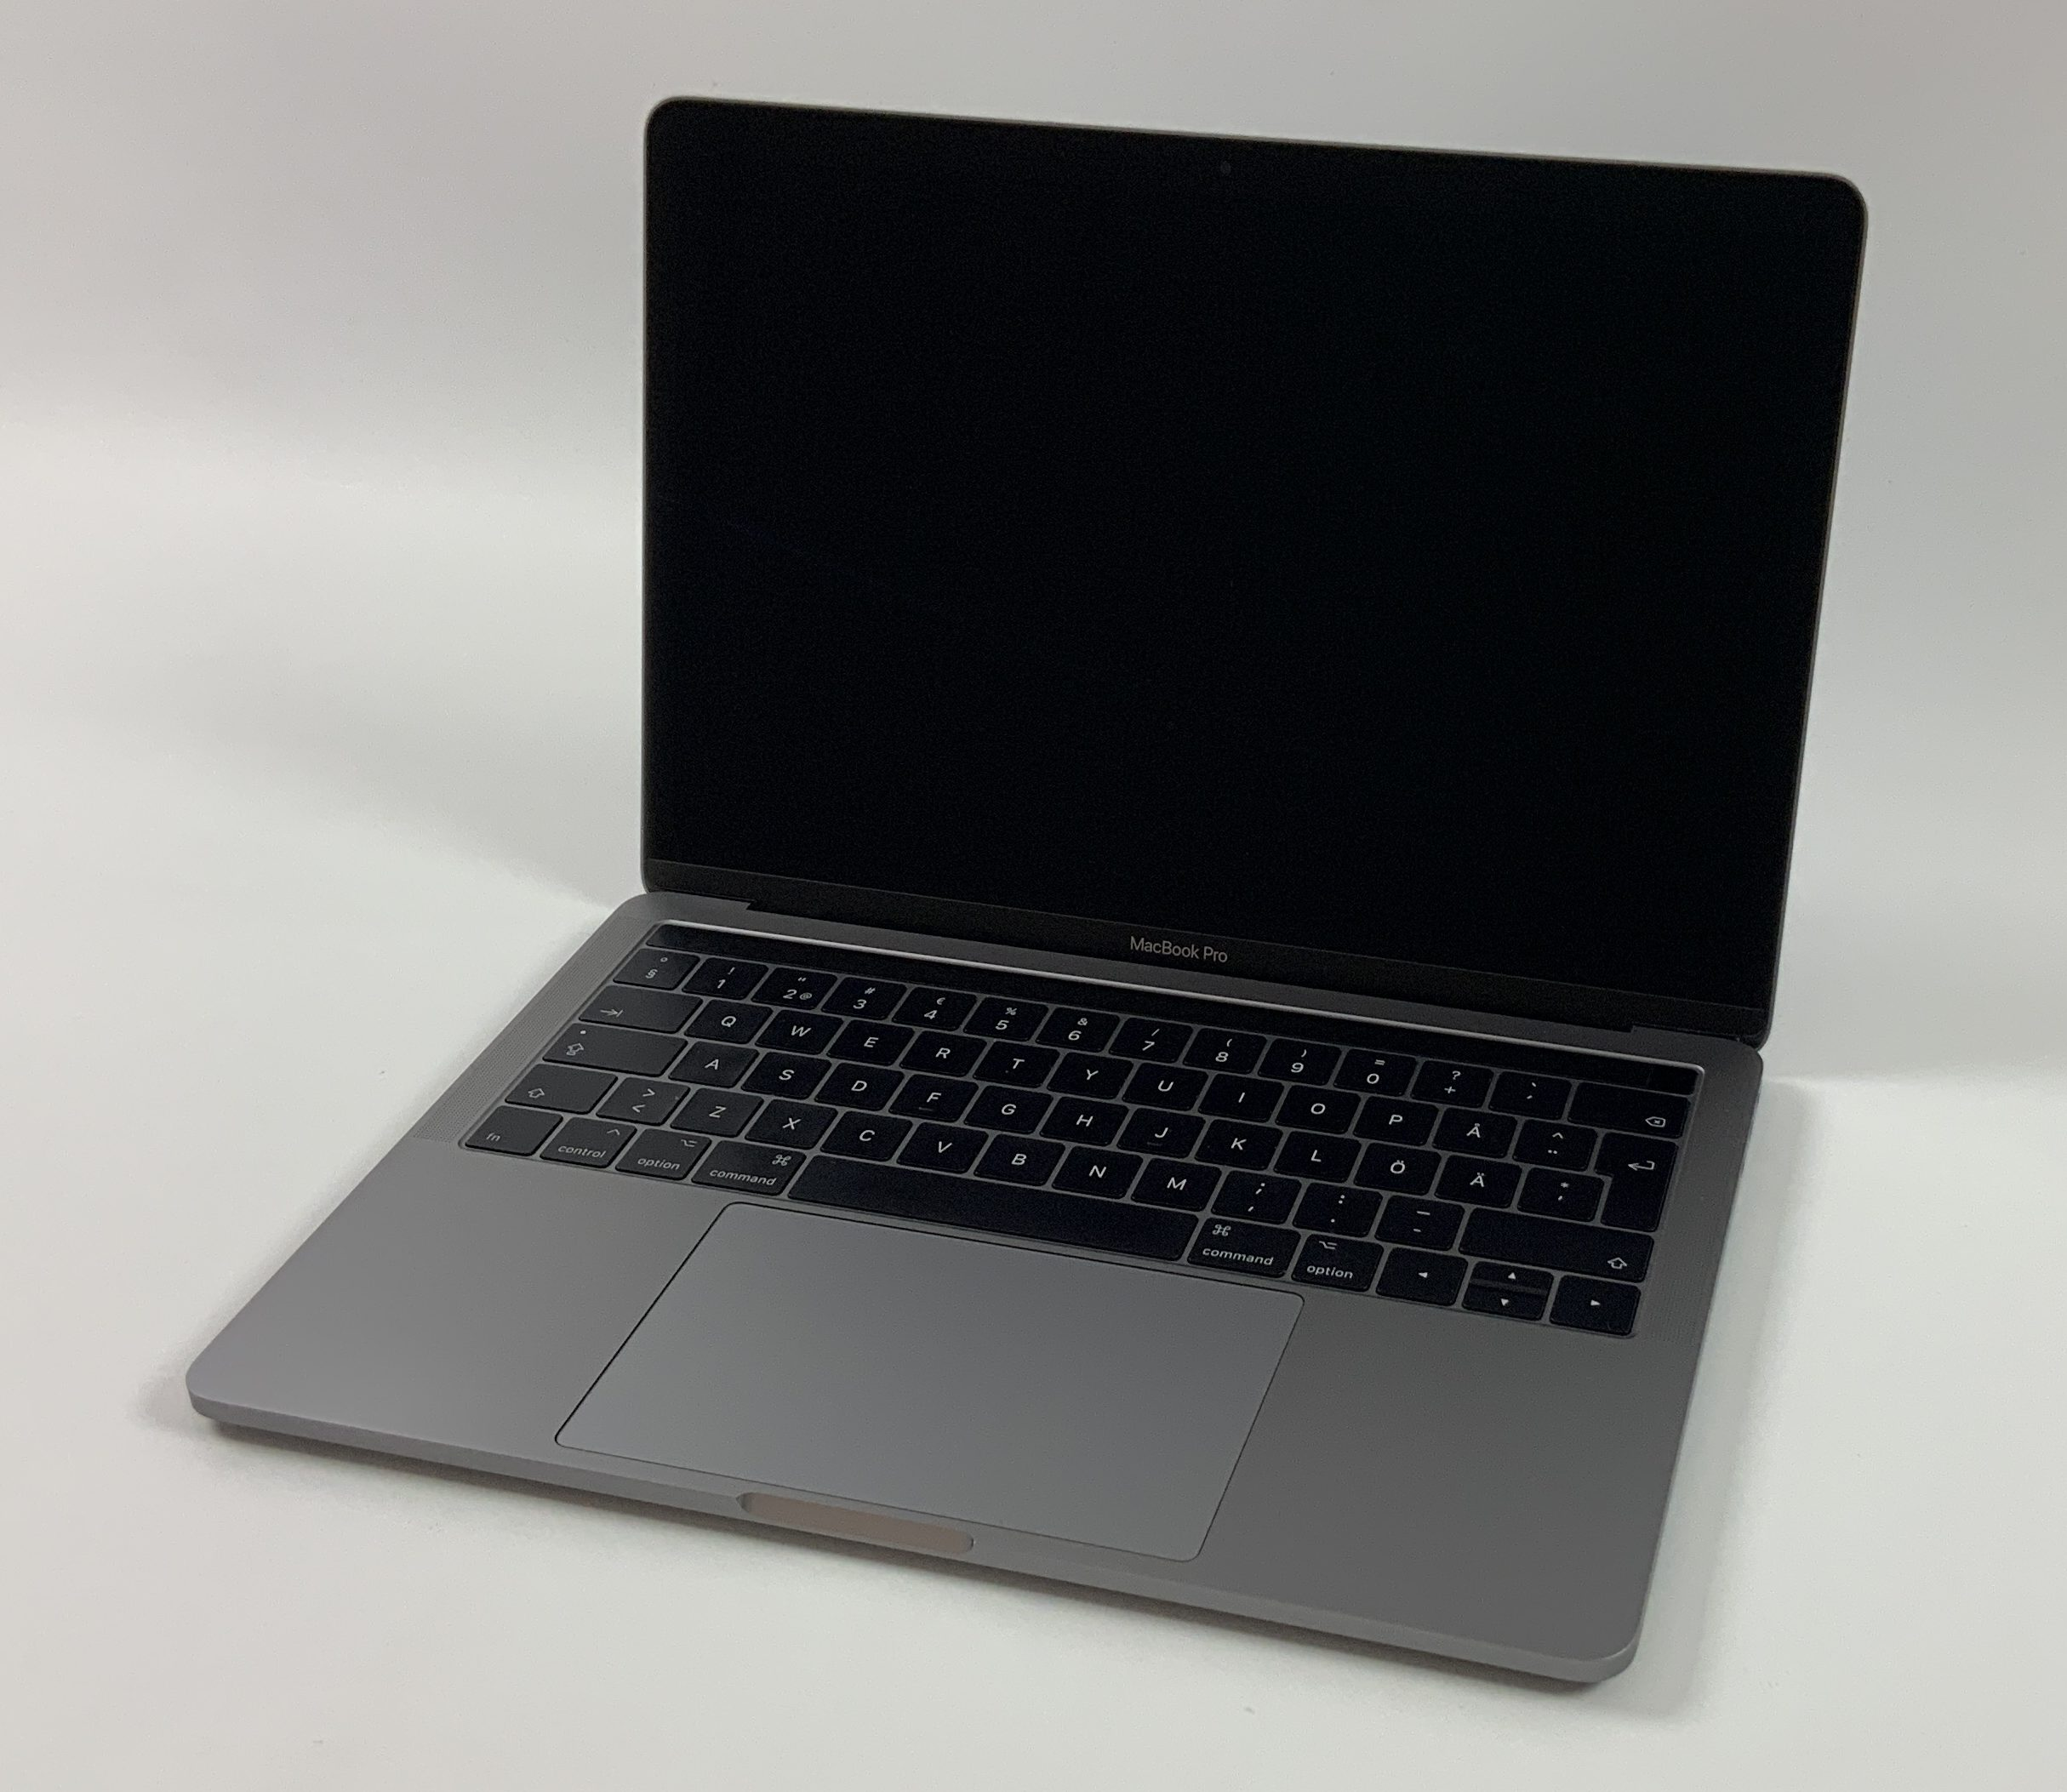 "MacBook Pro 13"" 4TBT Mid 2017 (Intel Core i5 3.1 GHz 16 GB RAM 256 GB SSD), Space Gray, Intel Core i5 3.1 GHz, 16 GB RAM, 256 GB SSD, Kuva 1"